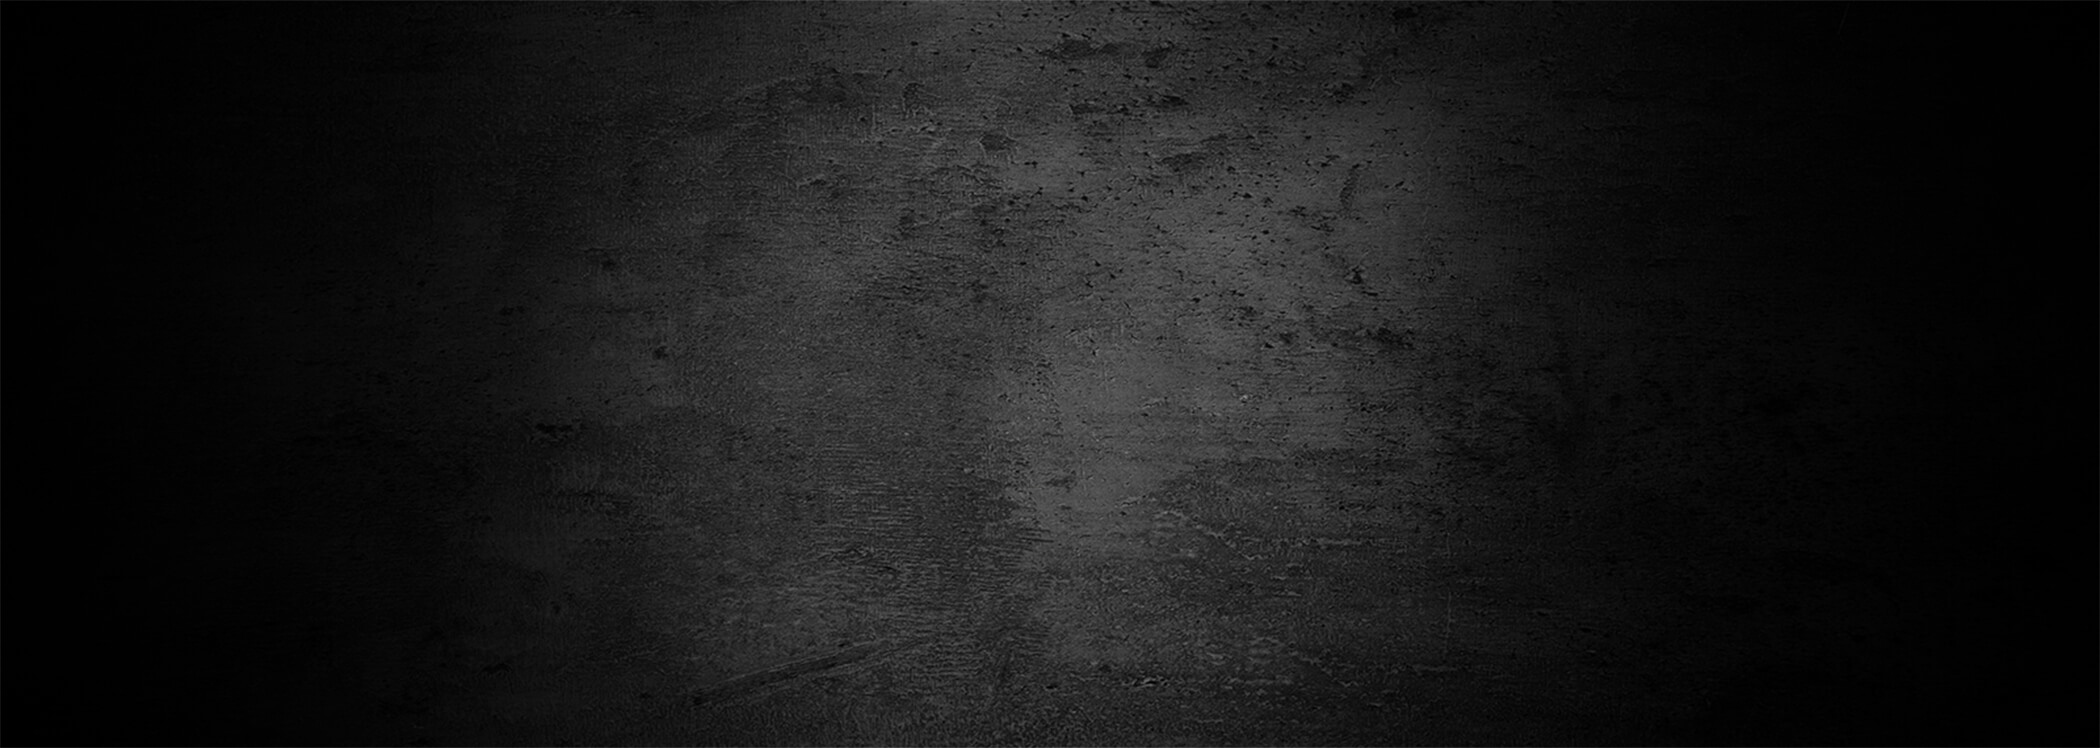 Black Gradient Header Background